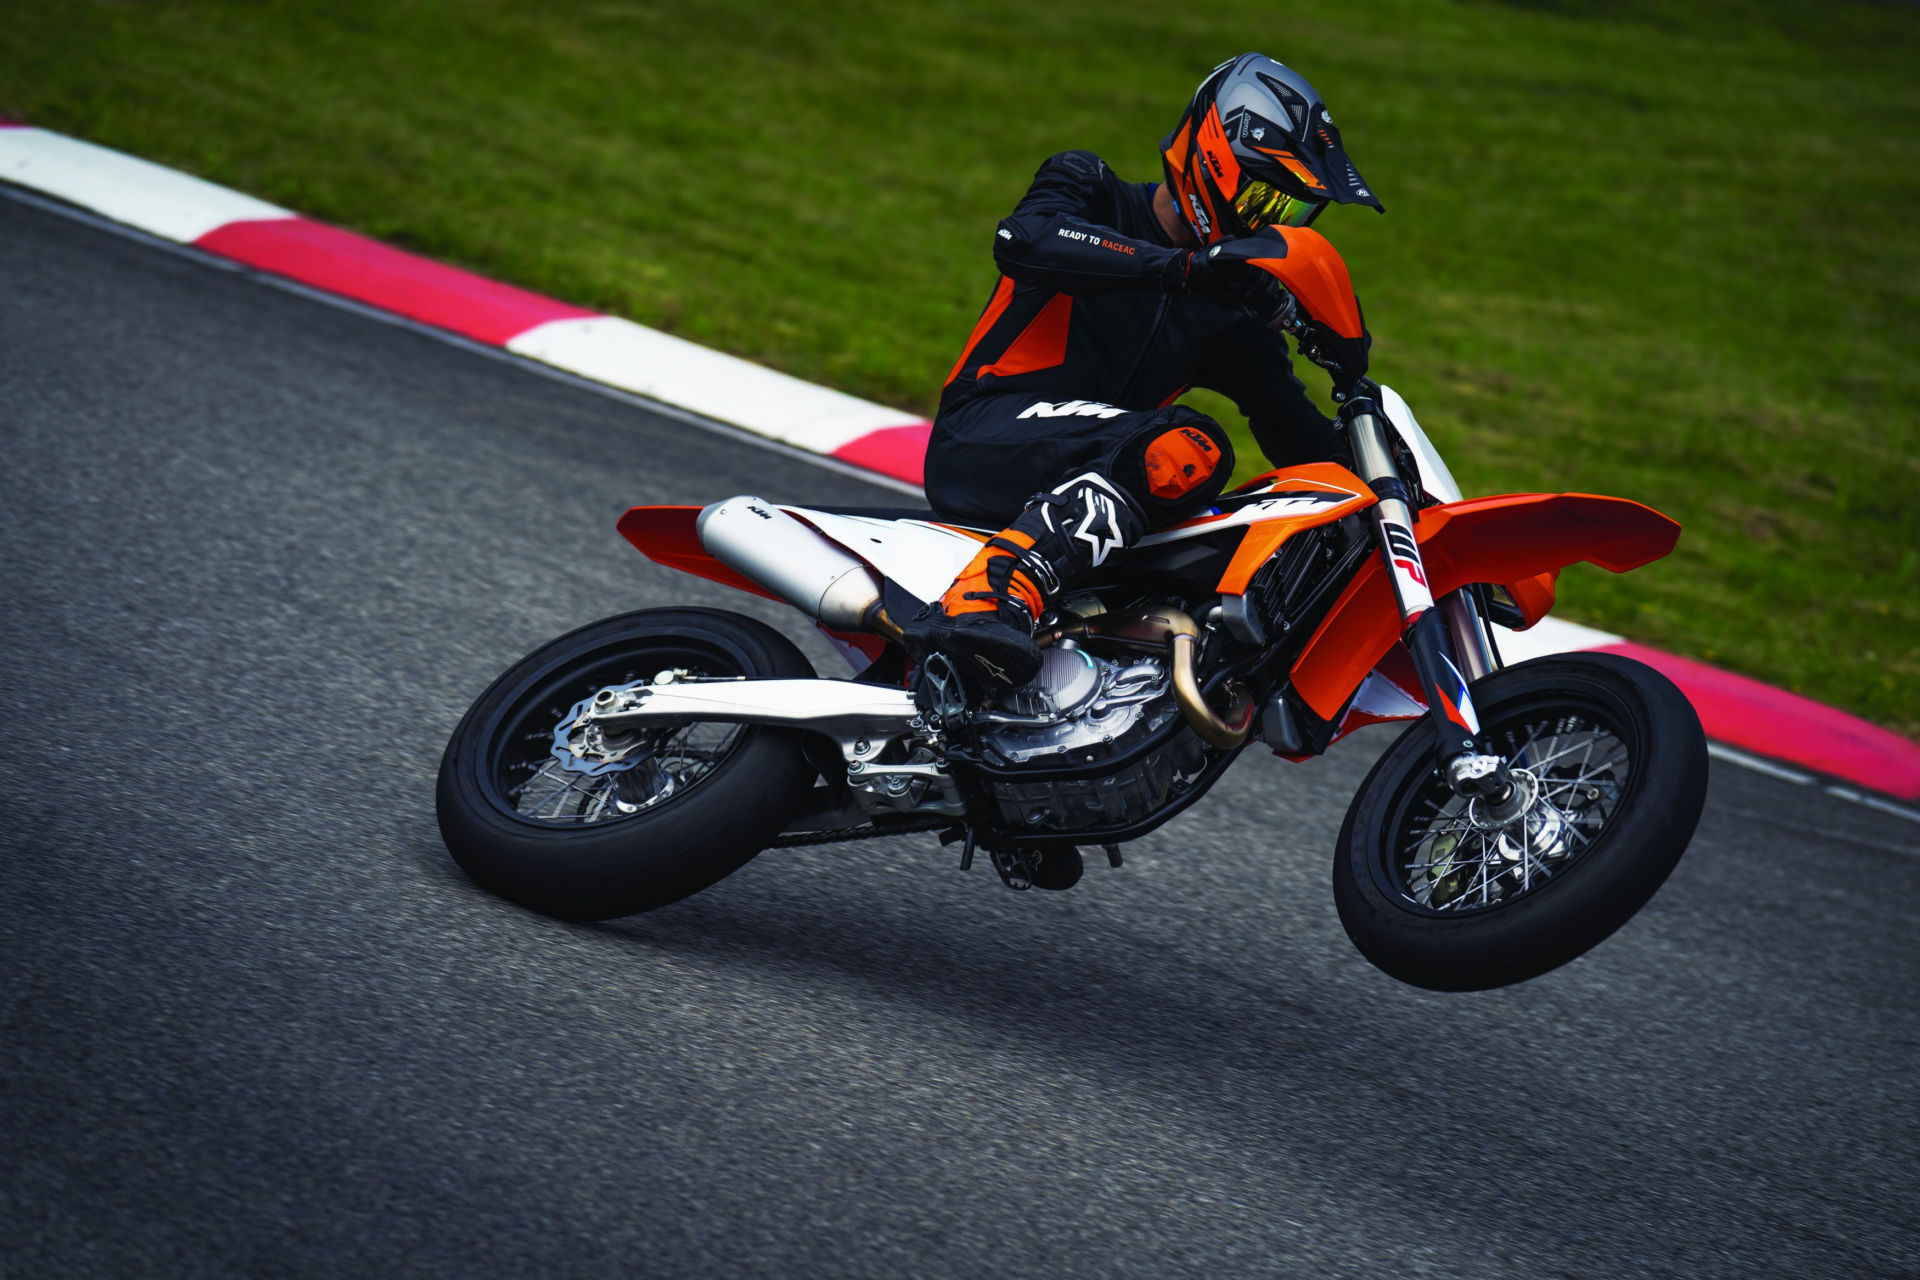 A 2021-model KTM 450 SMR in action. Photo courtesy KTM.